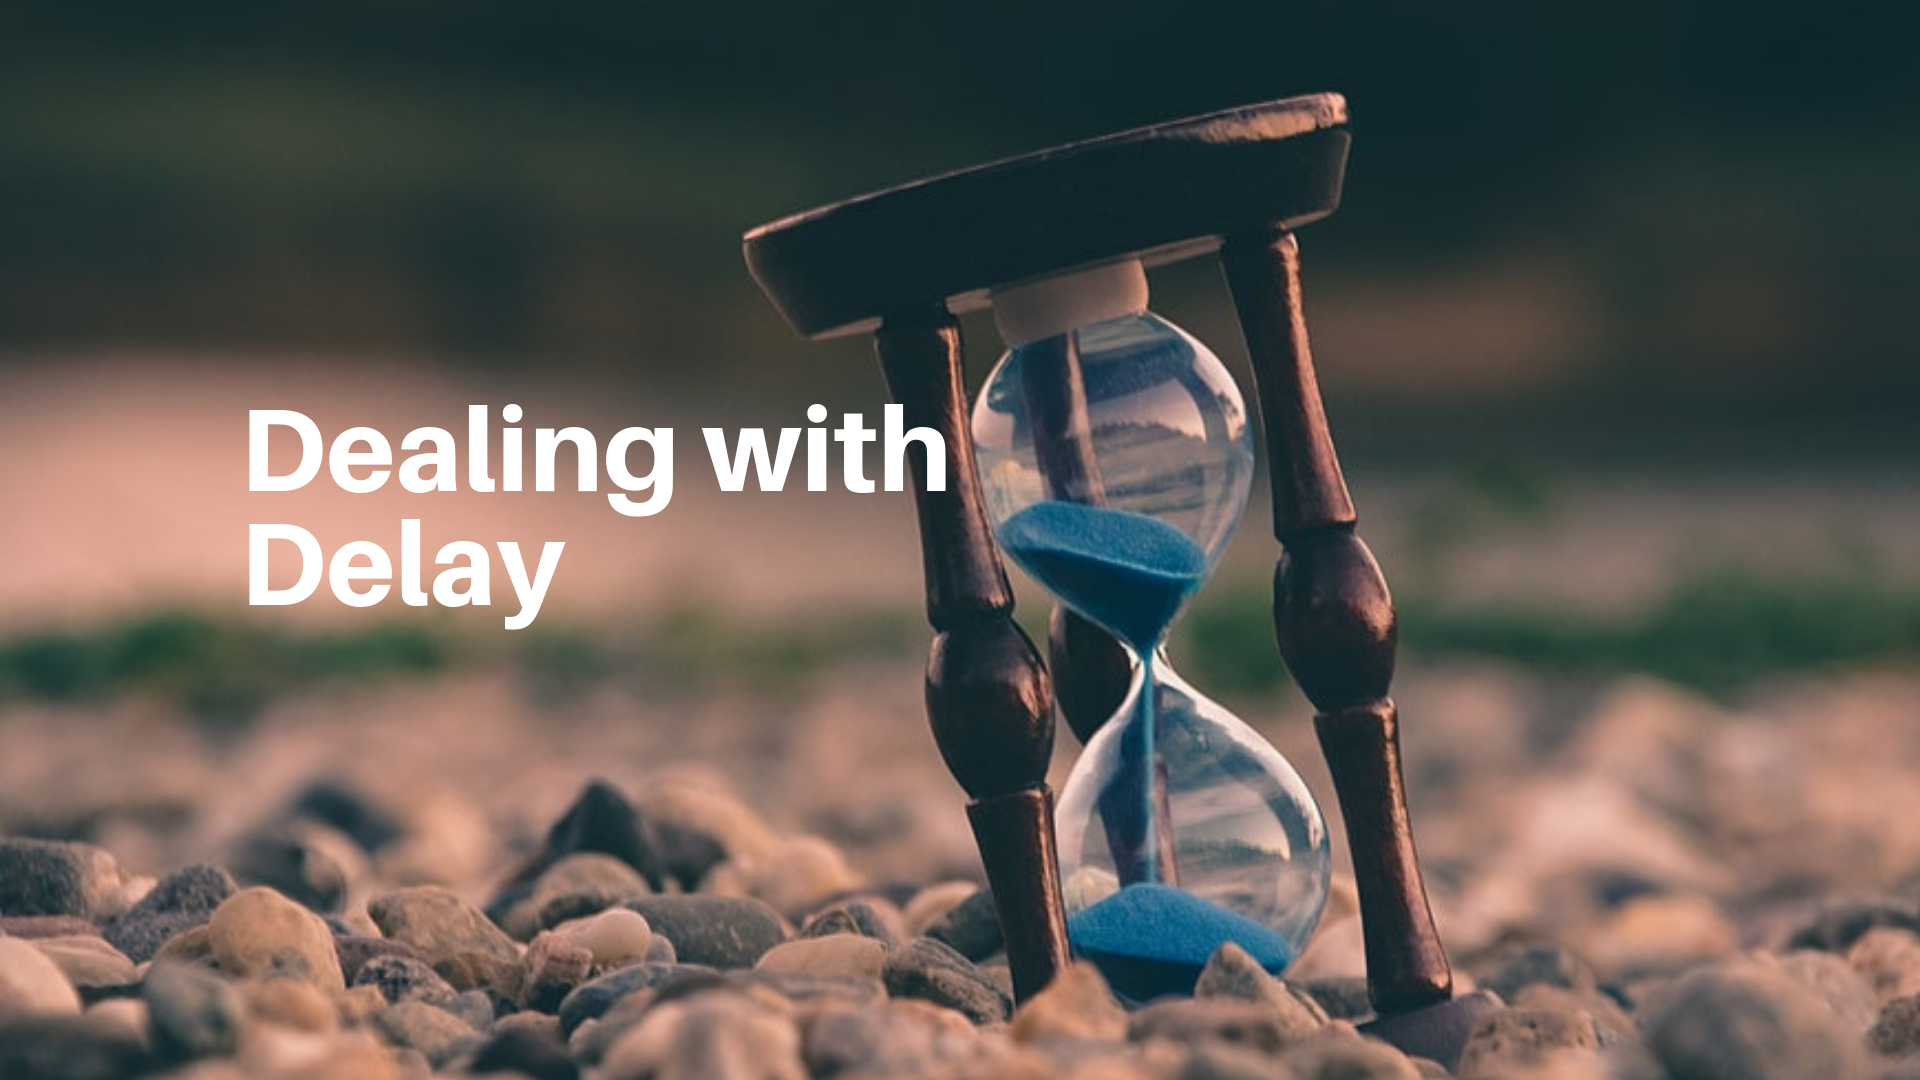 Dealing with Delay - 12/9/2018